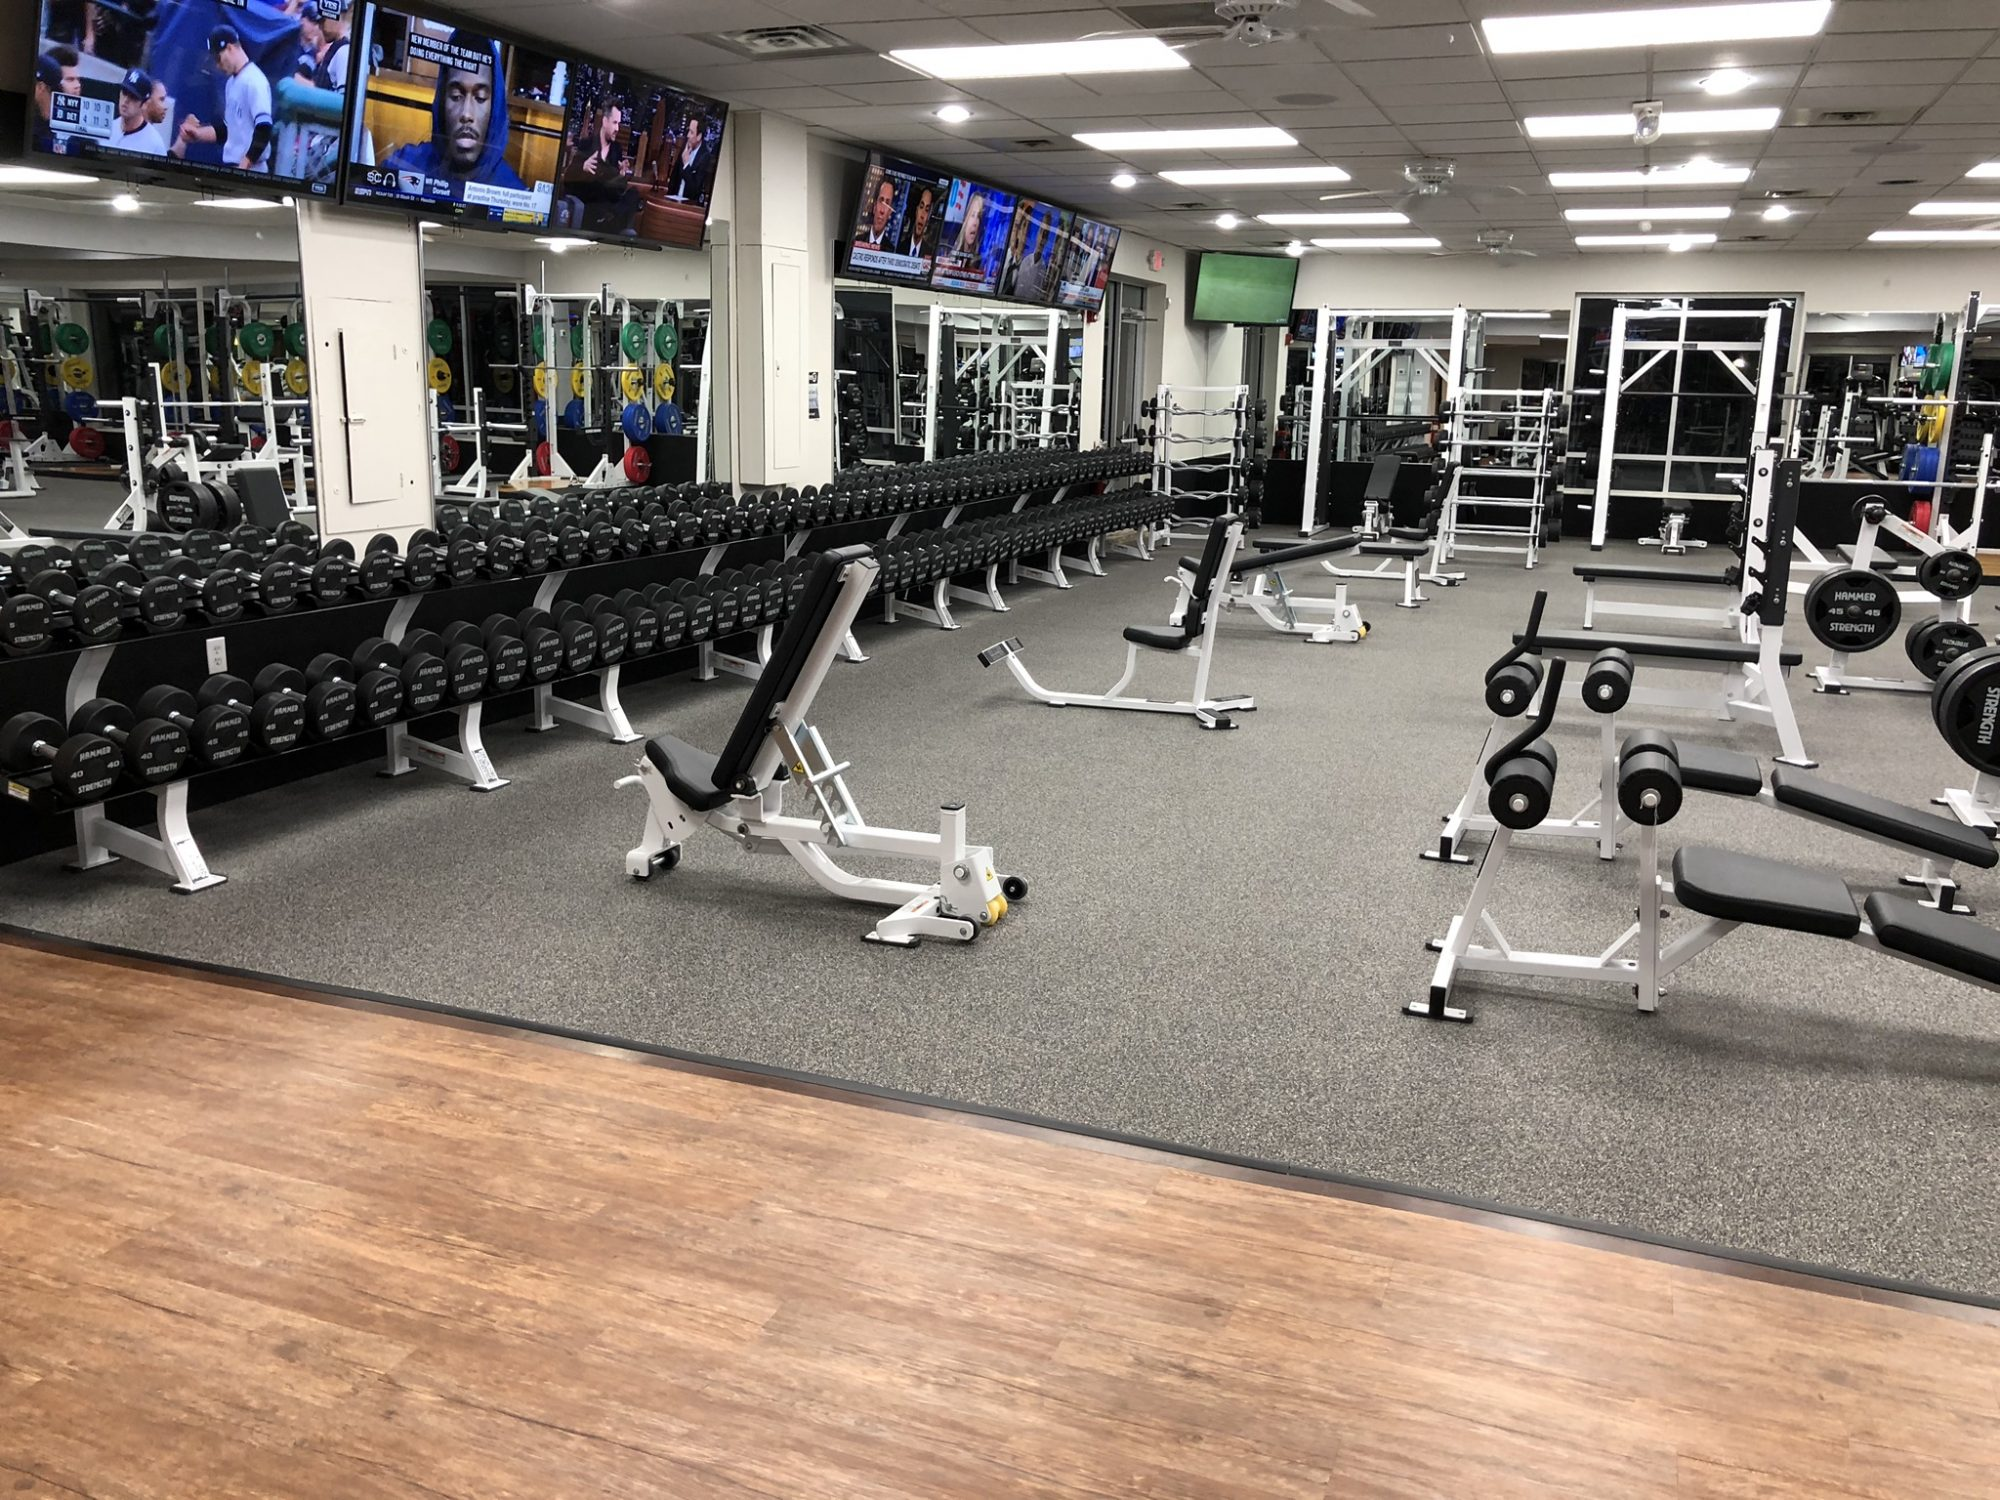 Gym Personal Training And Group Fitness Fitness 19 Bergen County